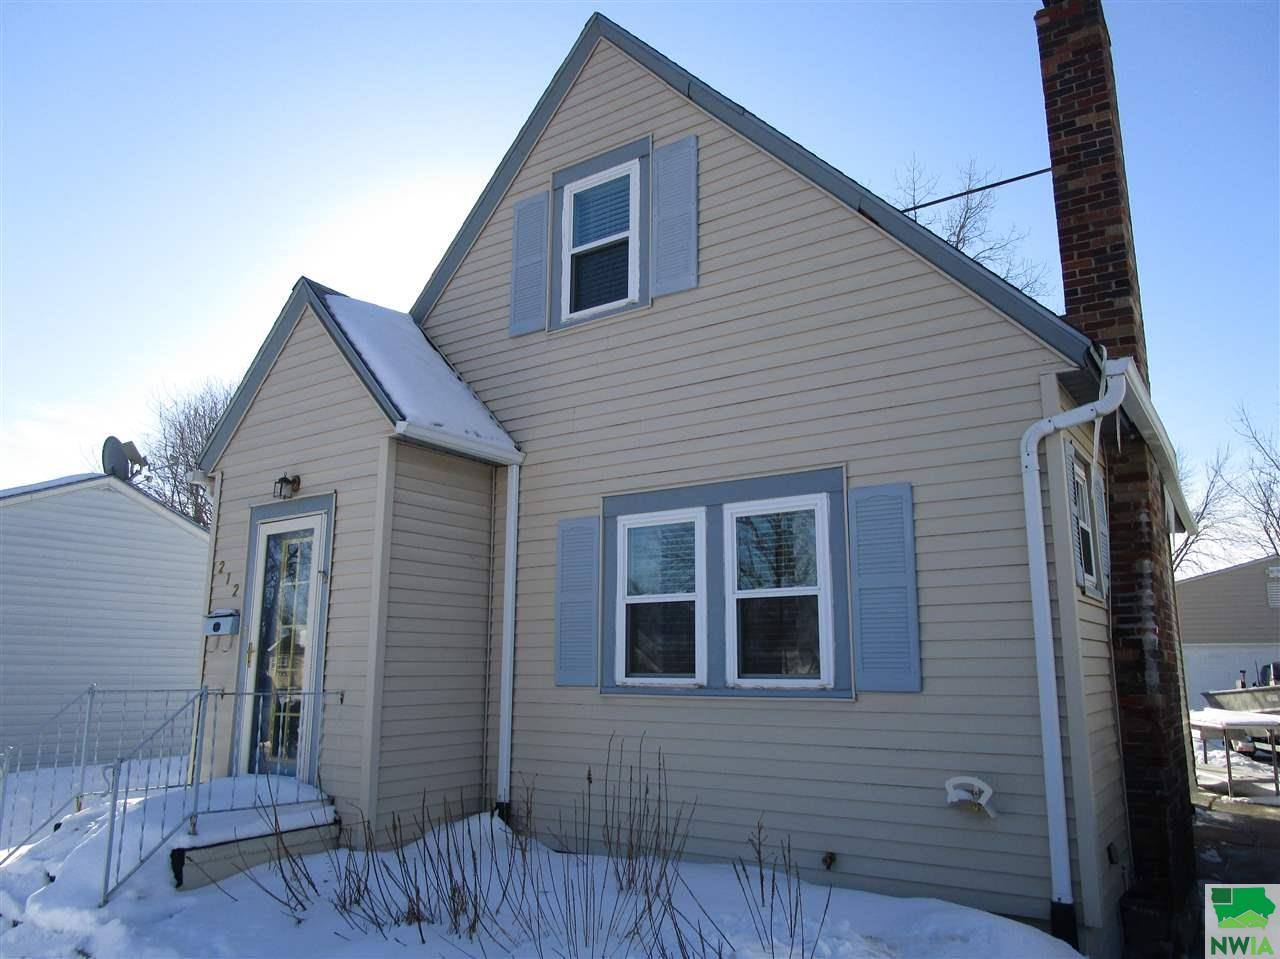 Property for sale at 212 E 30th, South Sioux City,  NE 68776